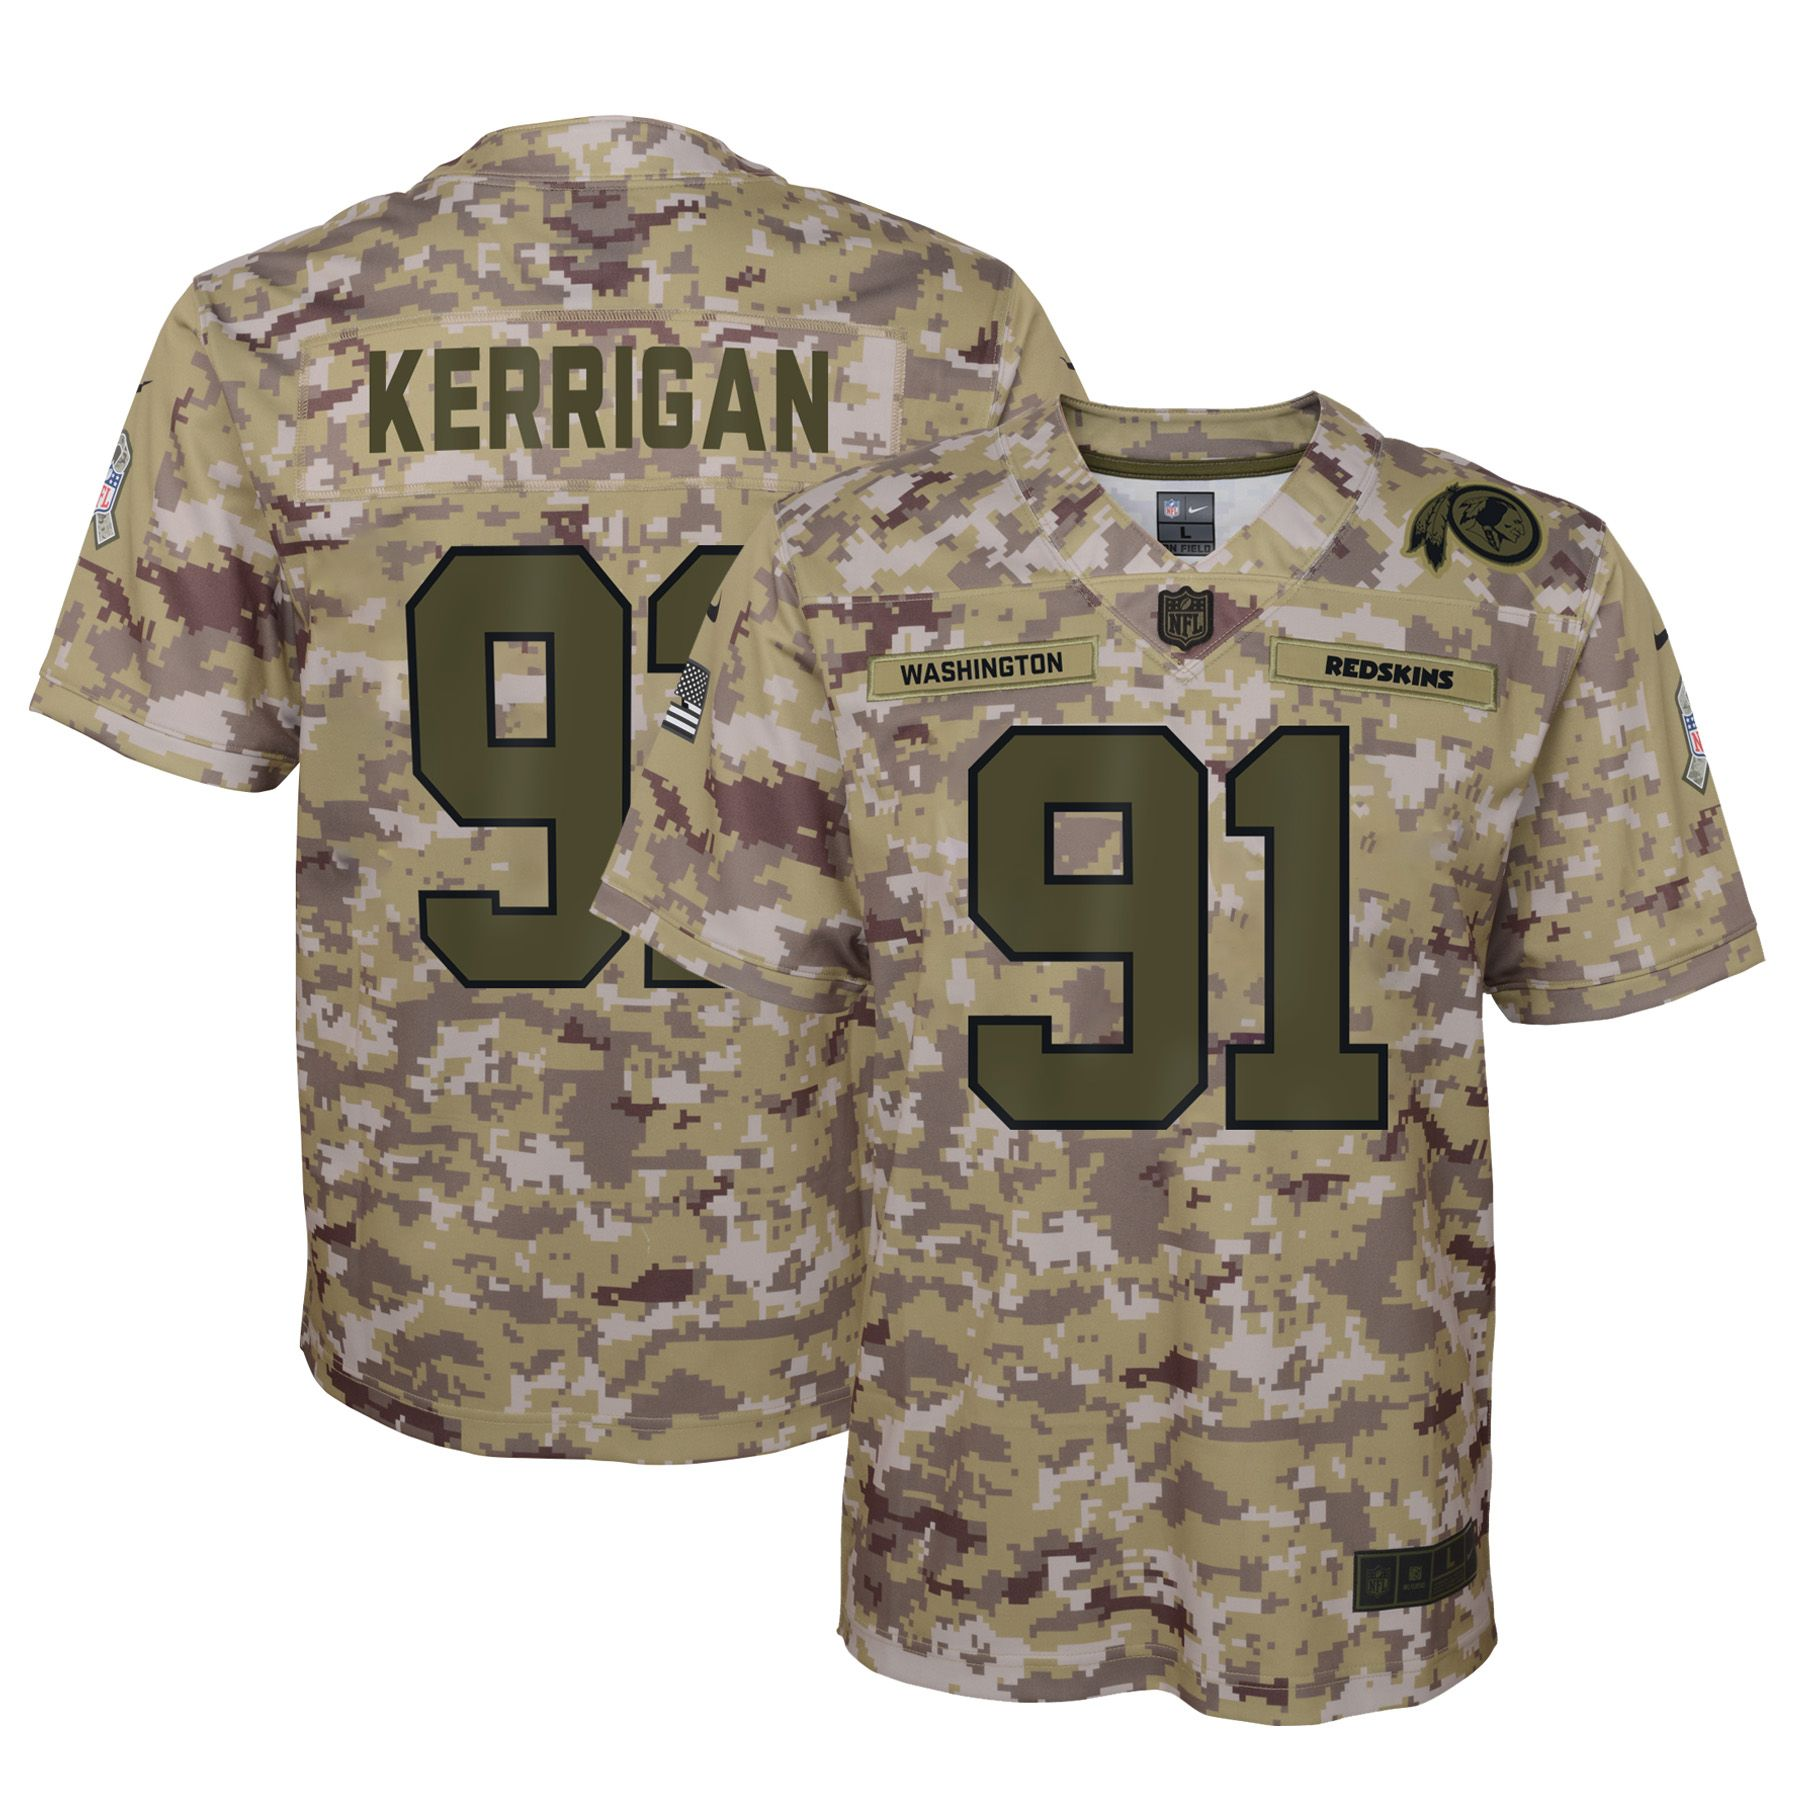 Nike ryan kerrigan washington redskins nike youth salute to service game jersey #salutetoservice